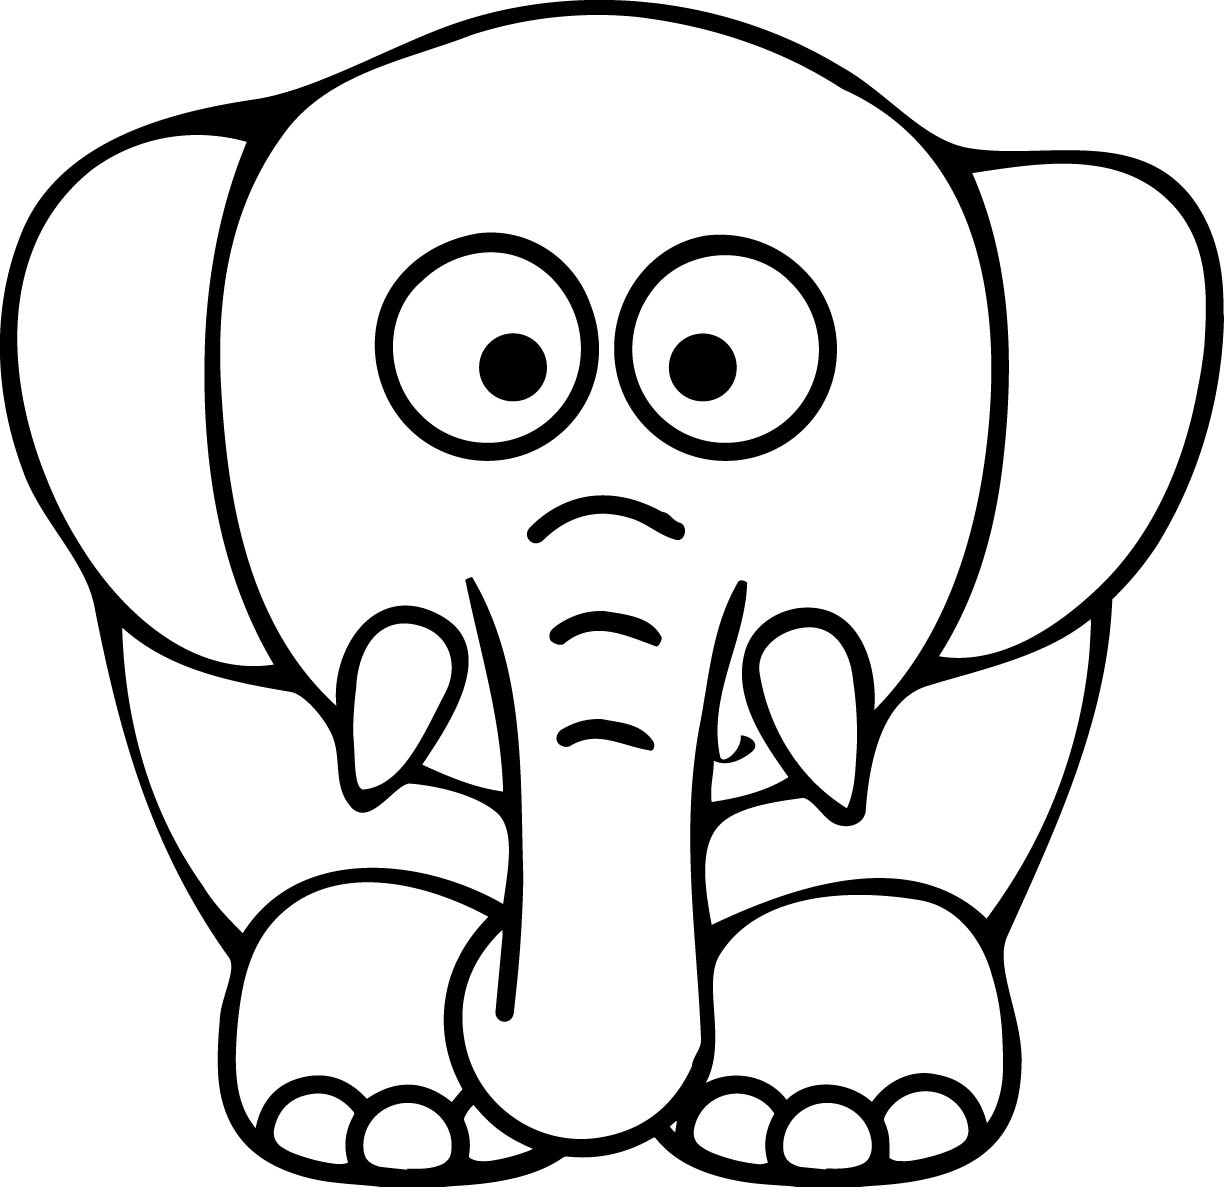 colouring pictures of elephant elephant coloring book pages get coloring pages elephant colouring pictures of